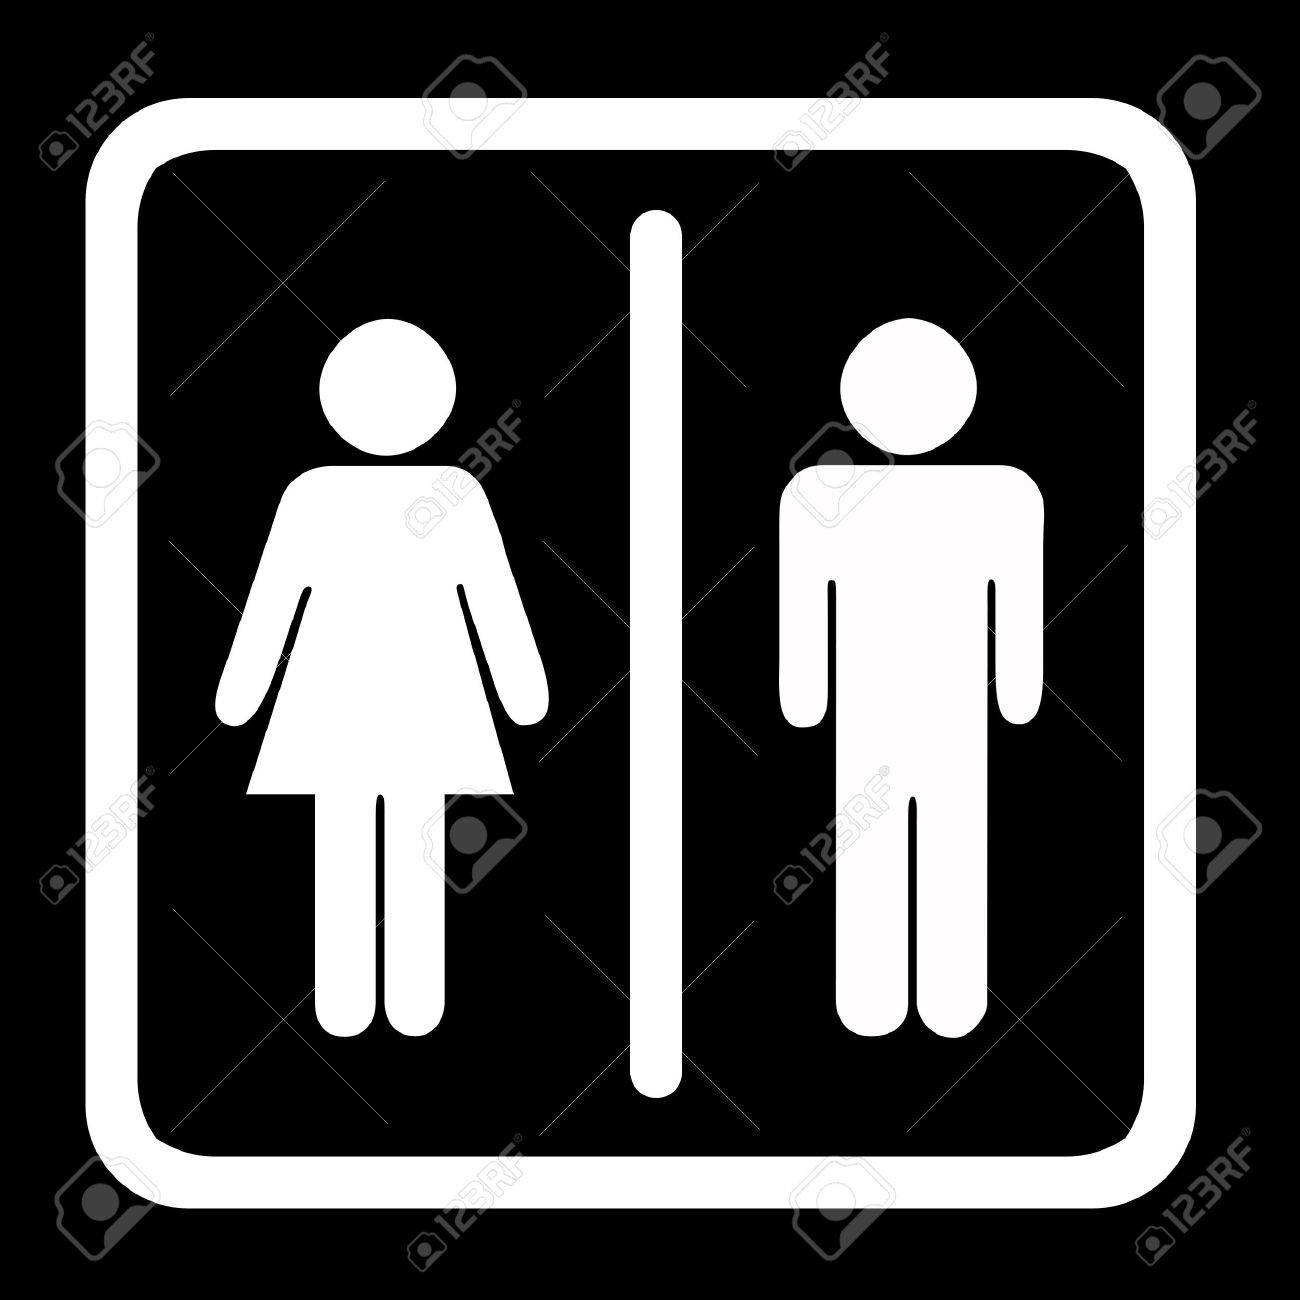 Women's And Men's Toilets Sign, White On Black Stock Photo - 2459794